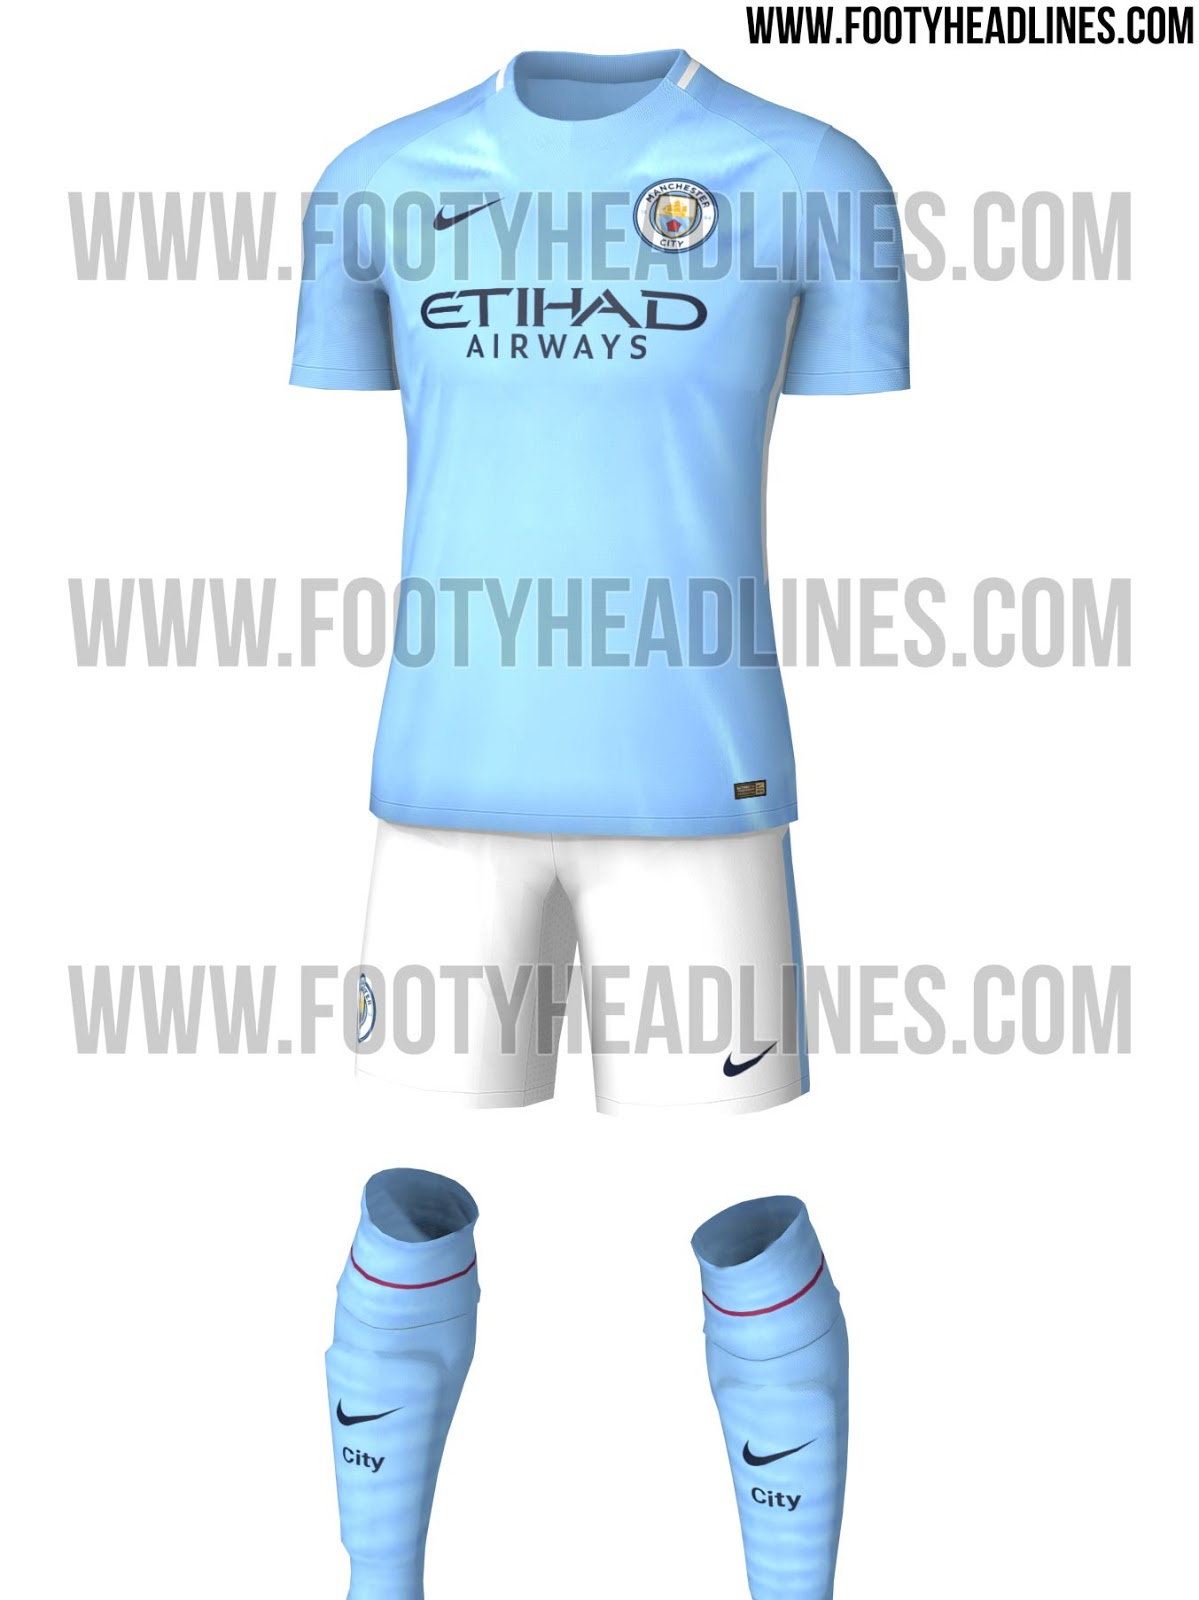 newest 138e8 cb661 PHOTOS: Manchester City's 2017/18 home and away kits revealed